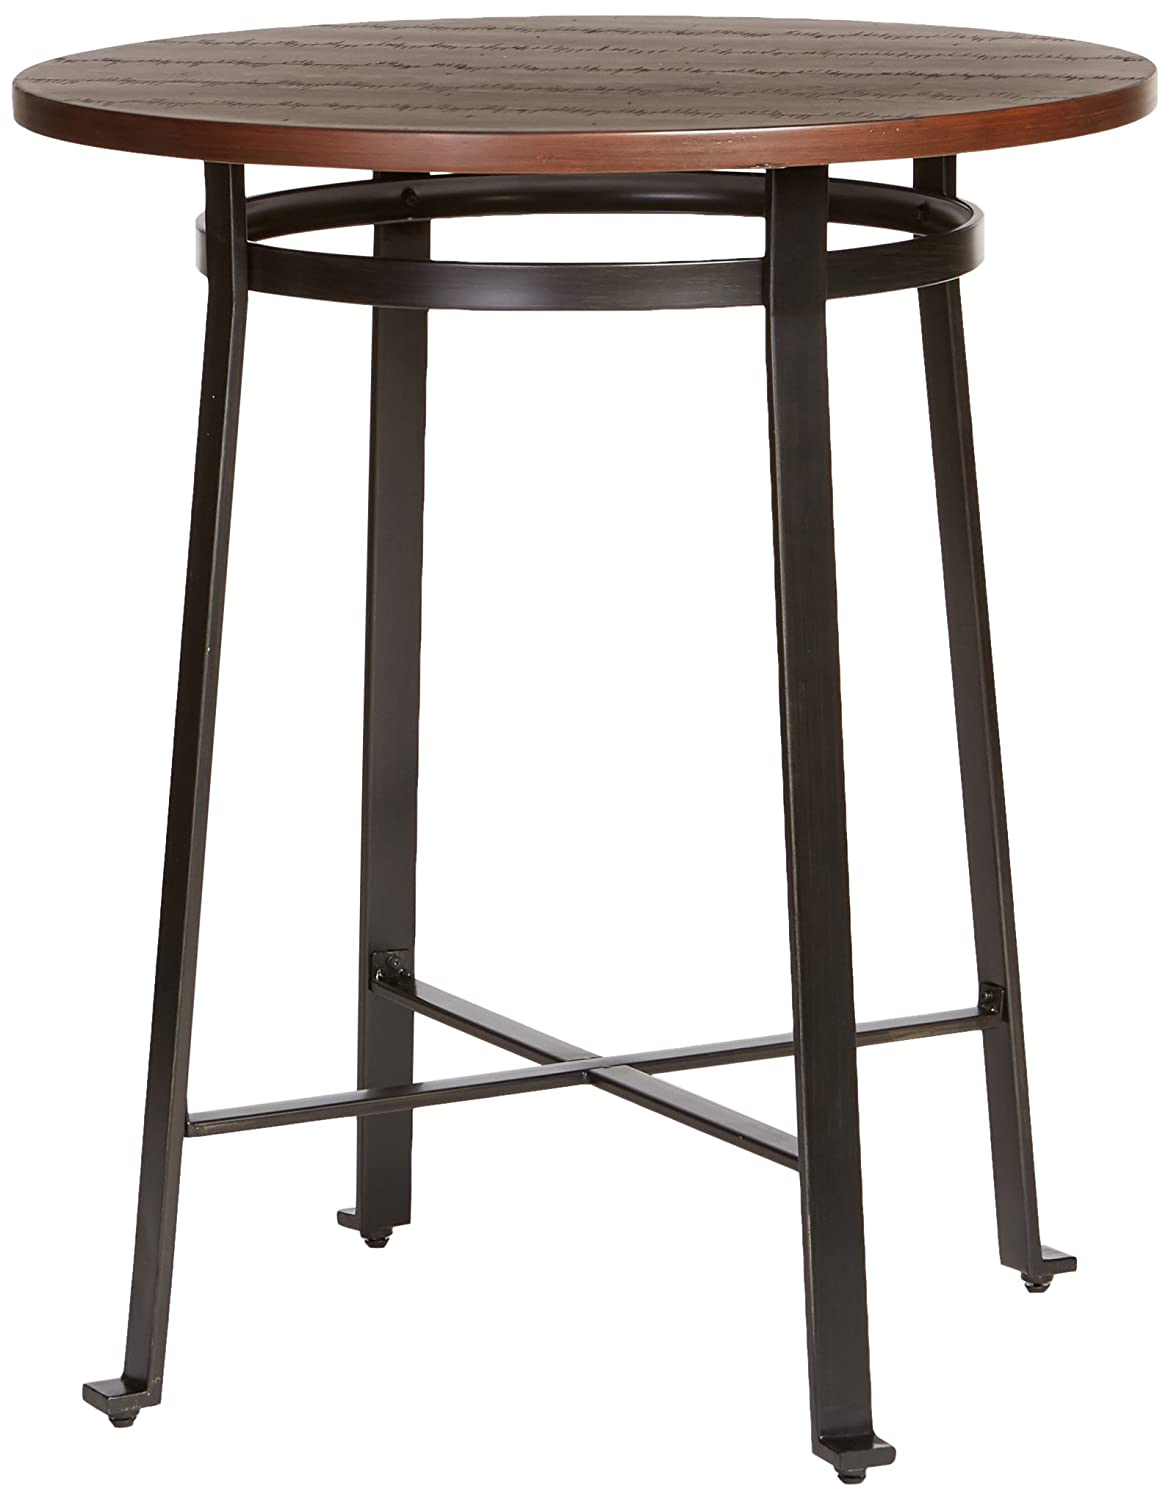 Signature Design by Ashley Furniture-Challiman Dining Room Bar Height Table-Casual Style-Rustic Brown D307-12